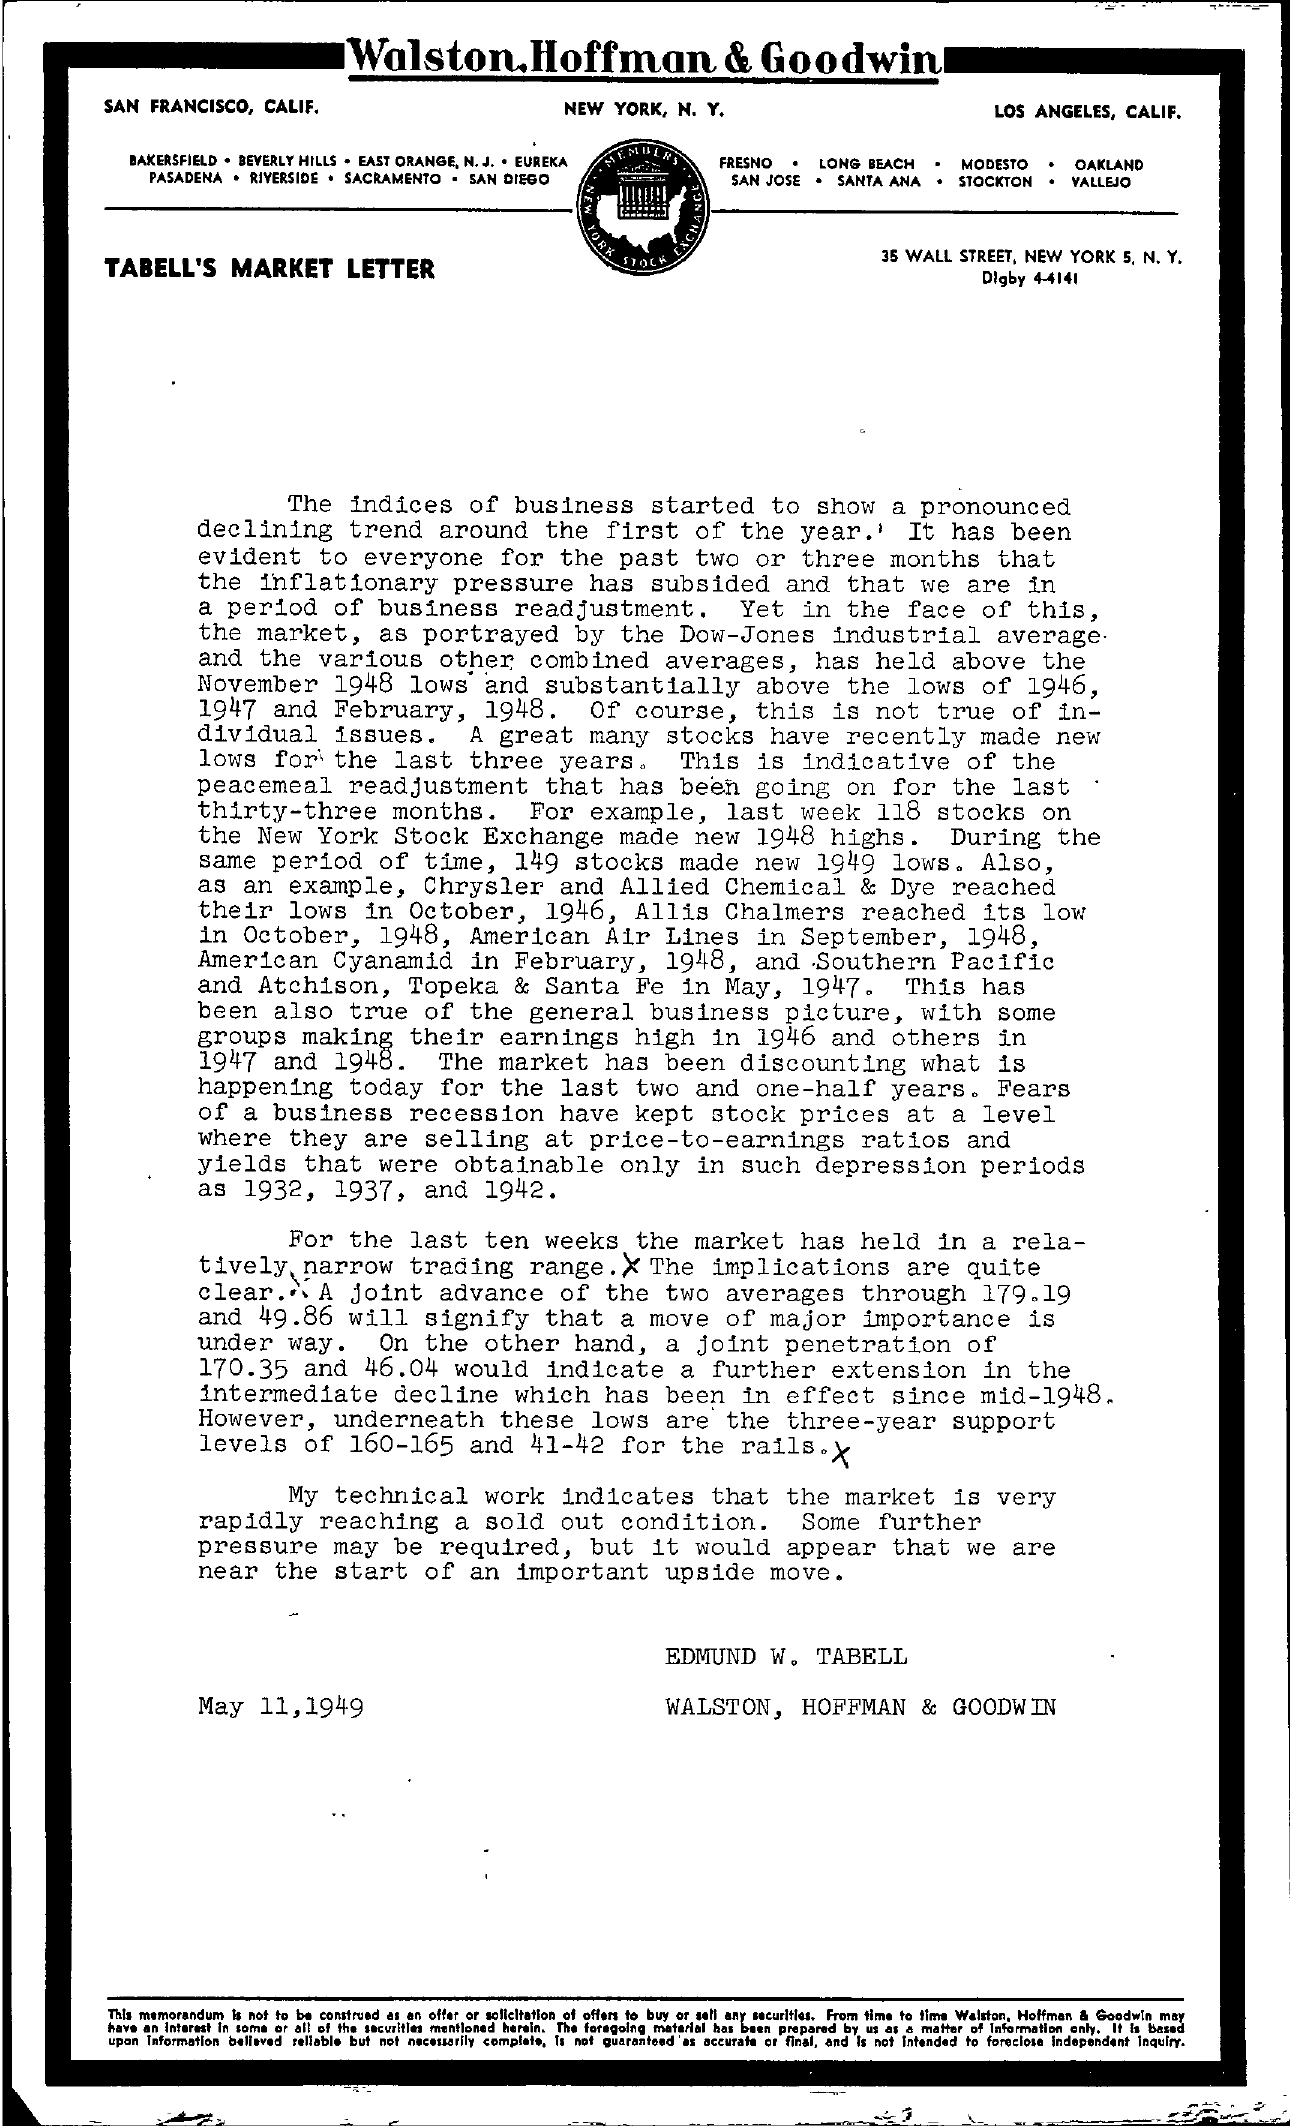 Tabell's Market Letter - May 11, 1949